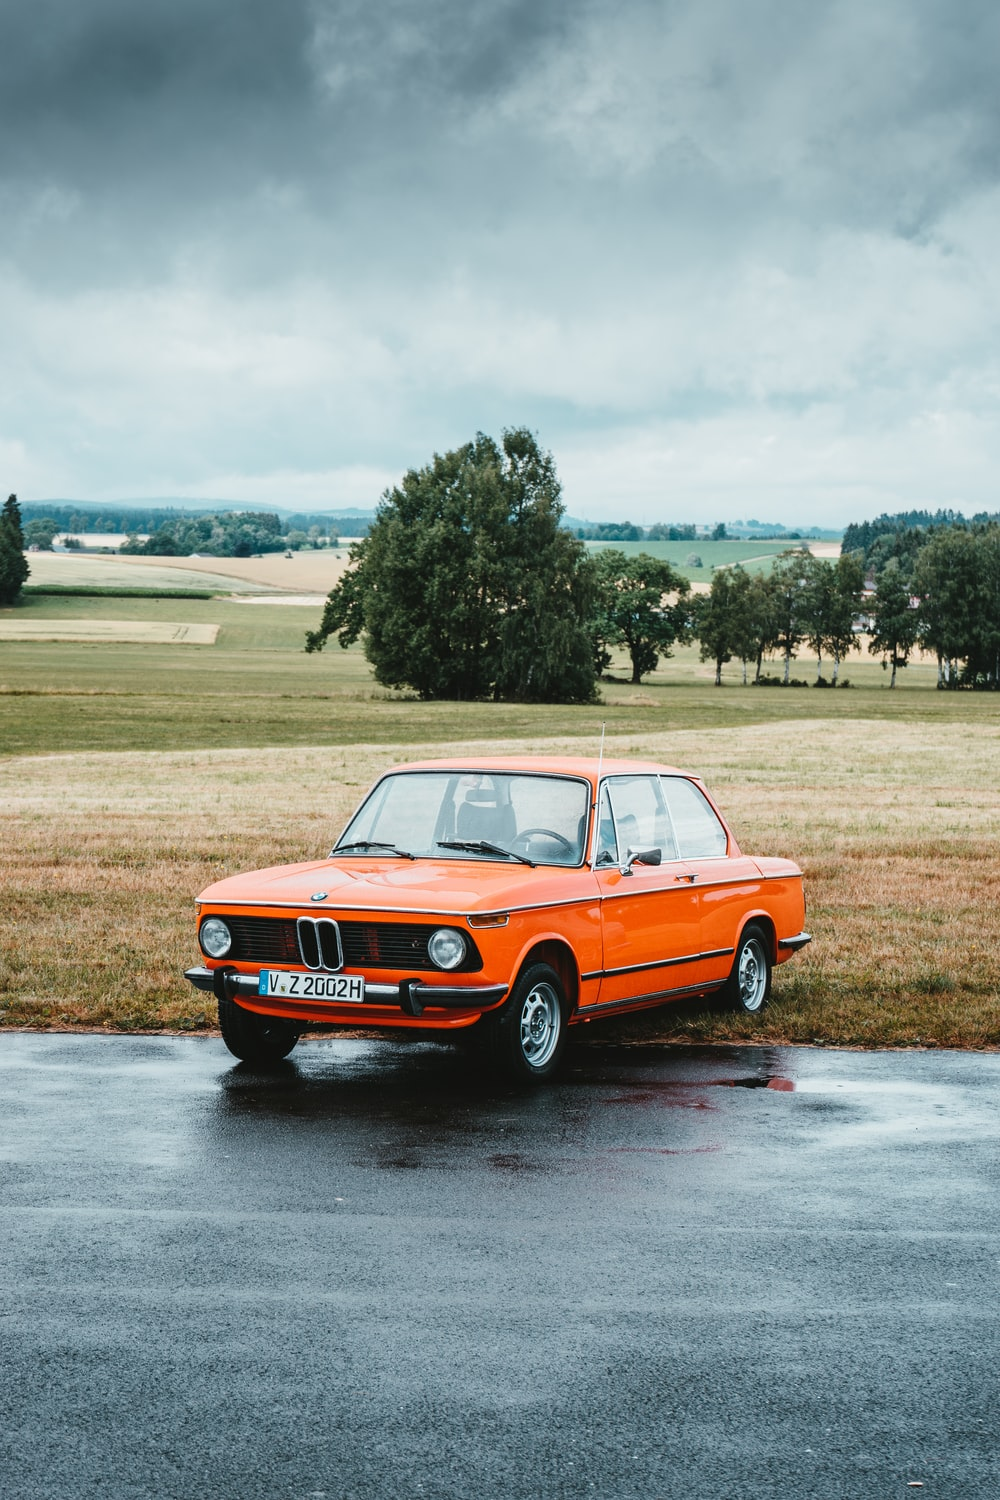 orange classic BMW coupe parked at roadside under grey cloudy sky